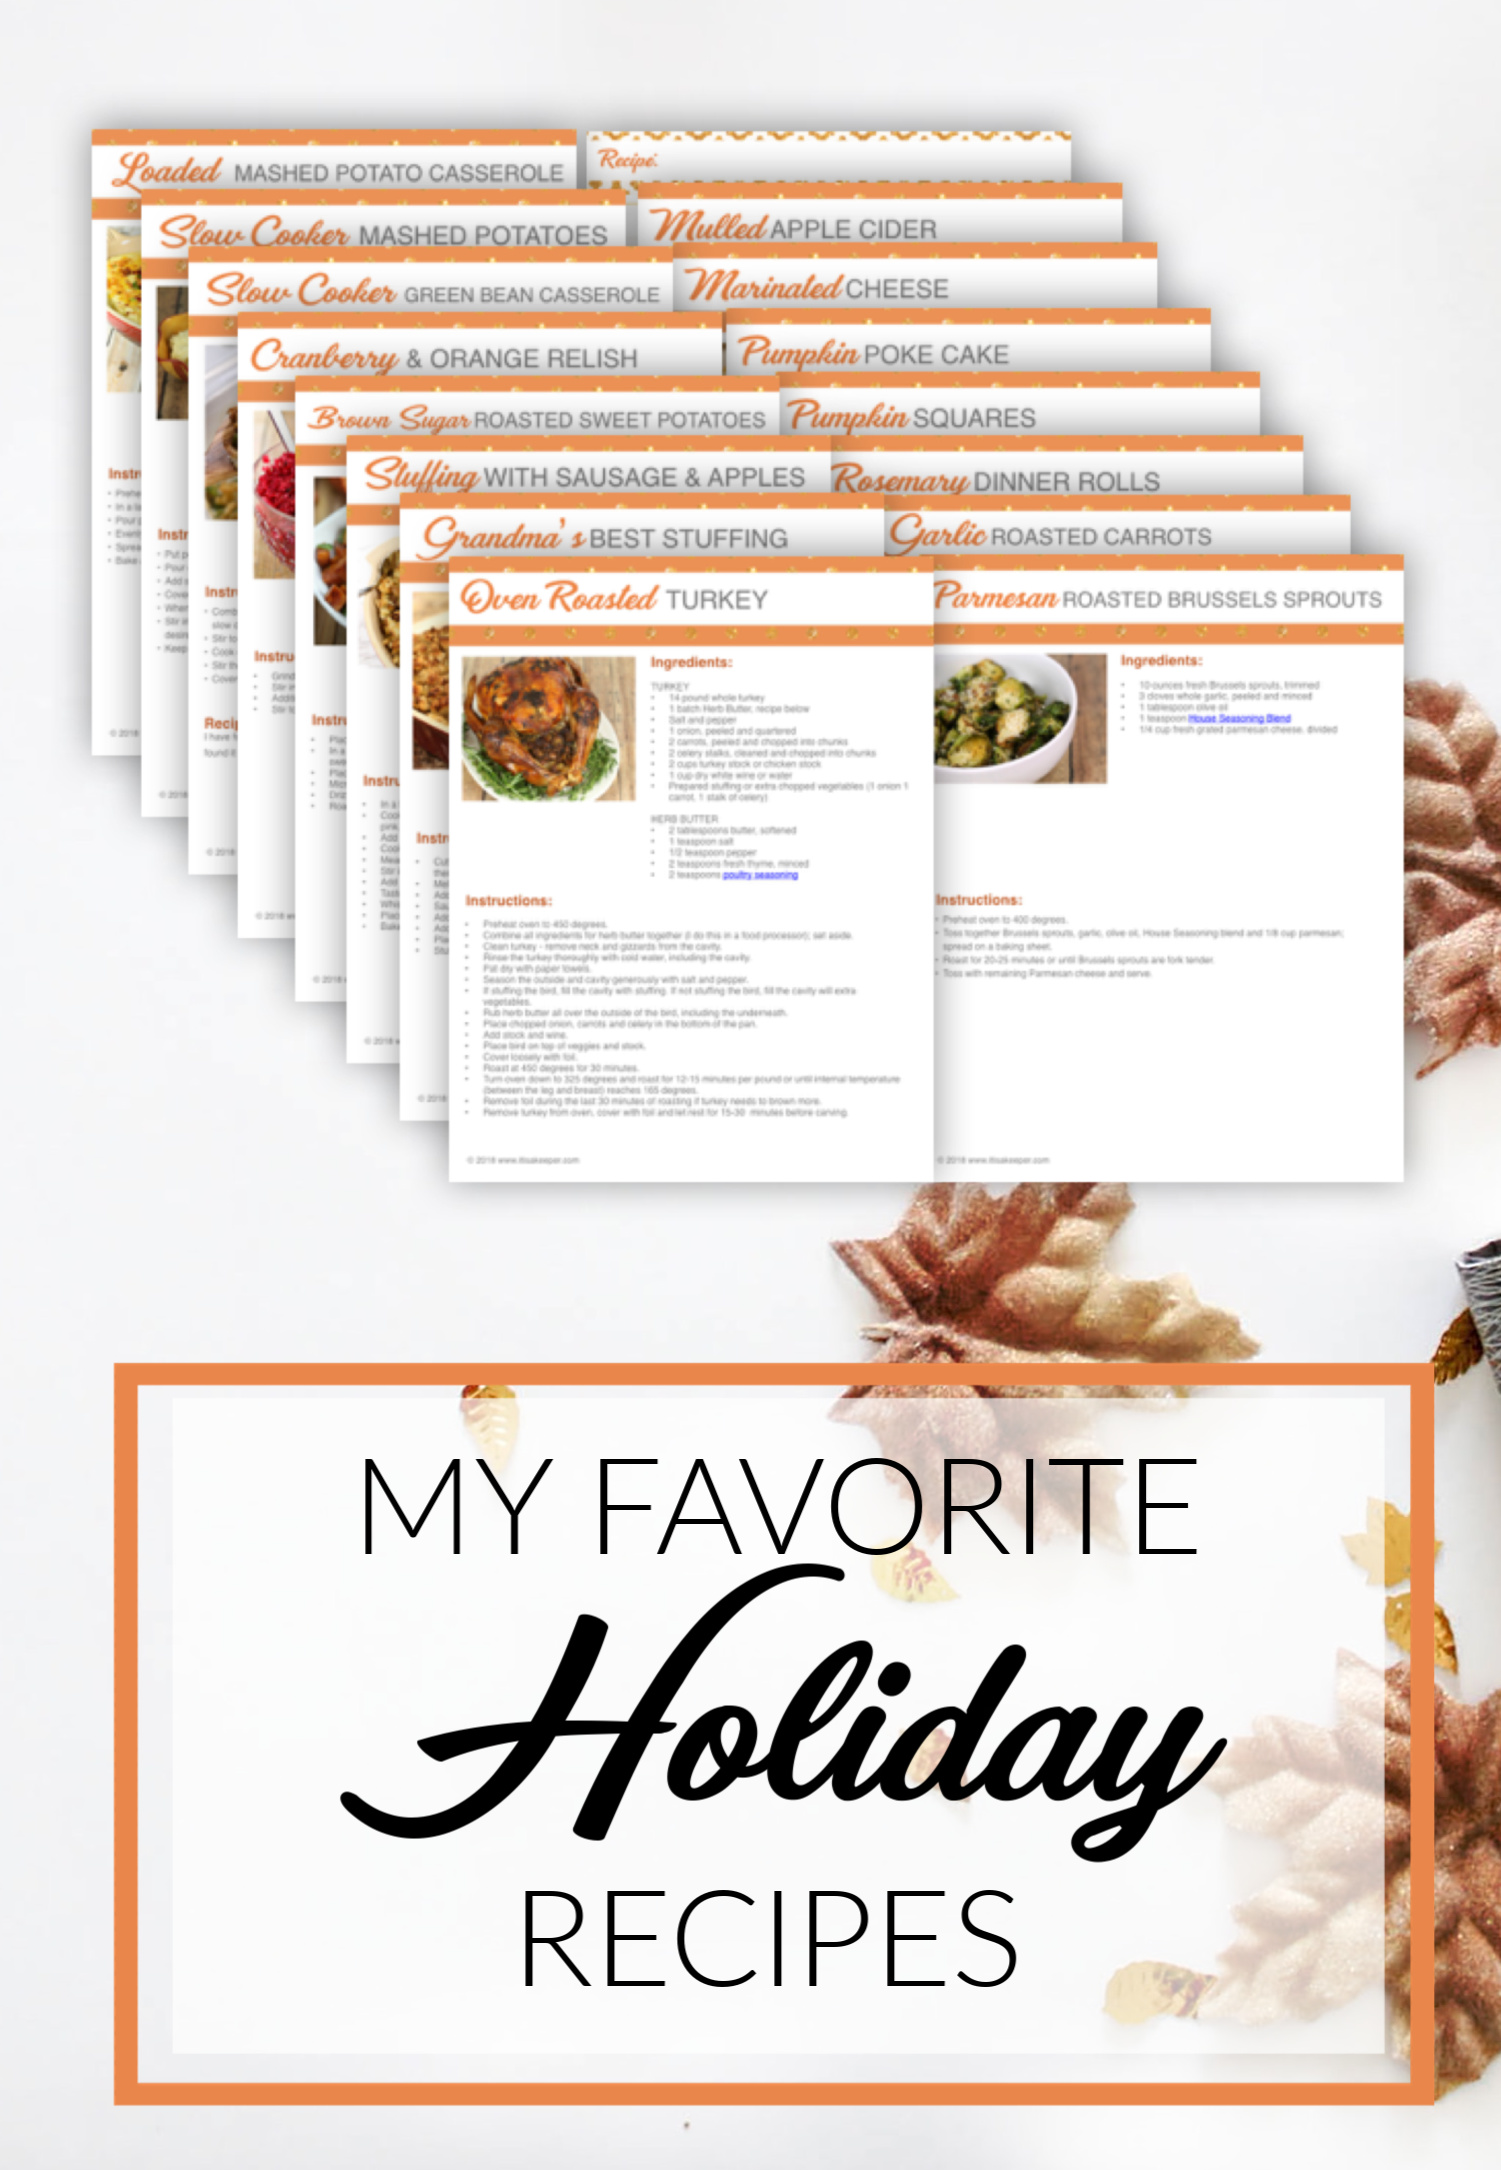 THANKSGIVING DAY PRINTABLE PLANNER RECIPES